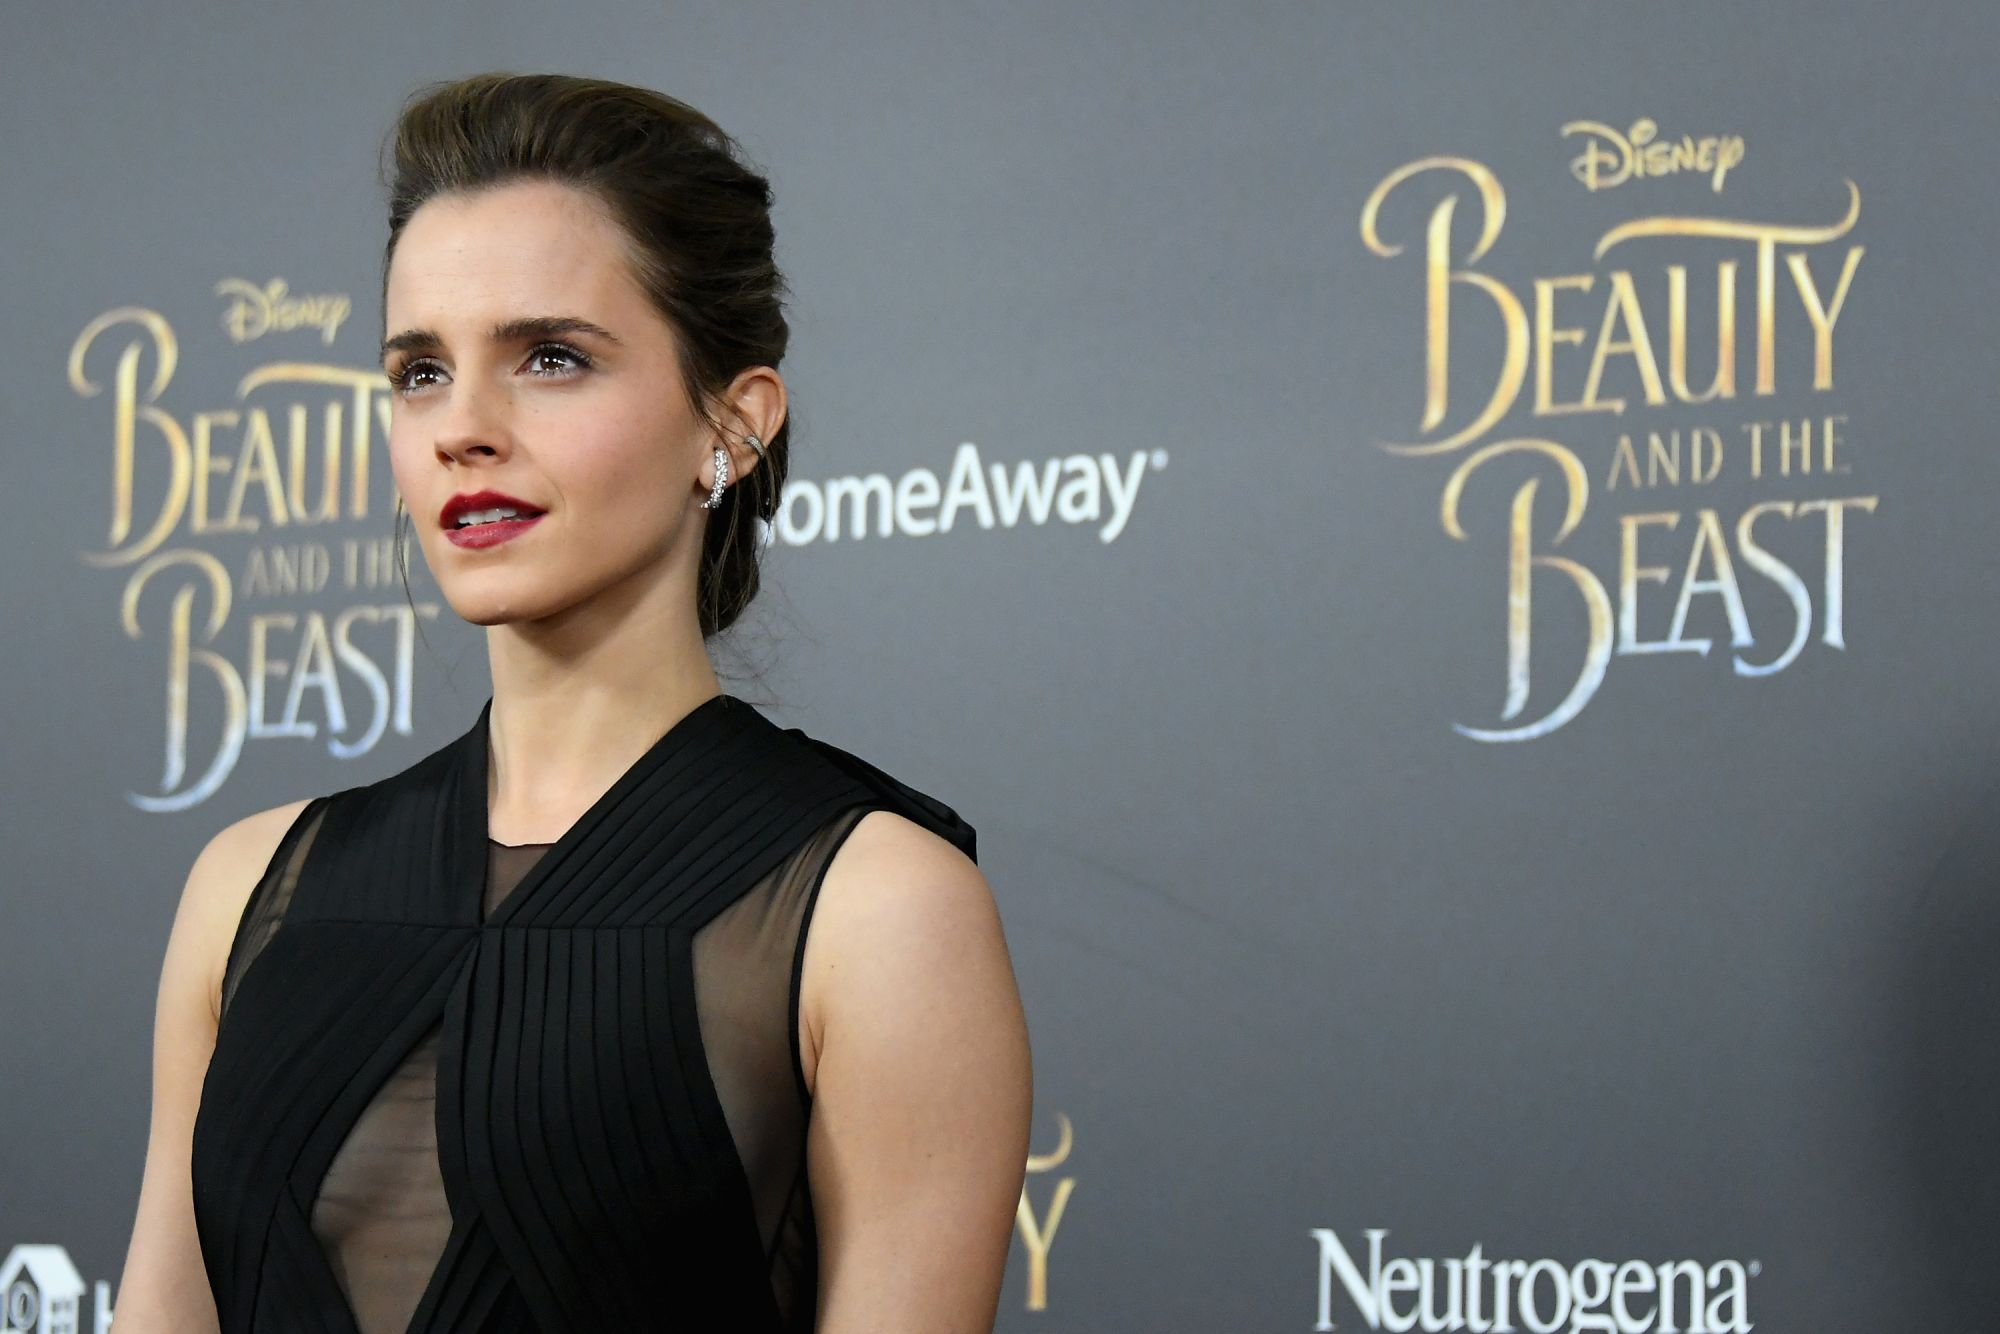 """NEW YORK, NY - MARCH 13:  Actress Emma Watson attends the """"Beauty And The Beast"""" New York Screening at Alice Tully Hall at Lincoln Center on March 13, 2017 in New York City.  (Photo by Mike Coppola/Getty Images)"""